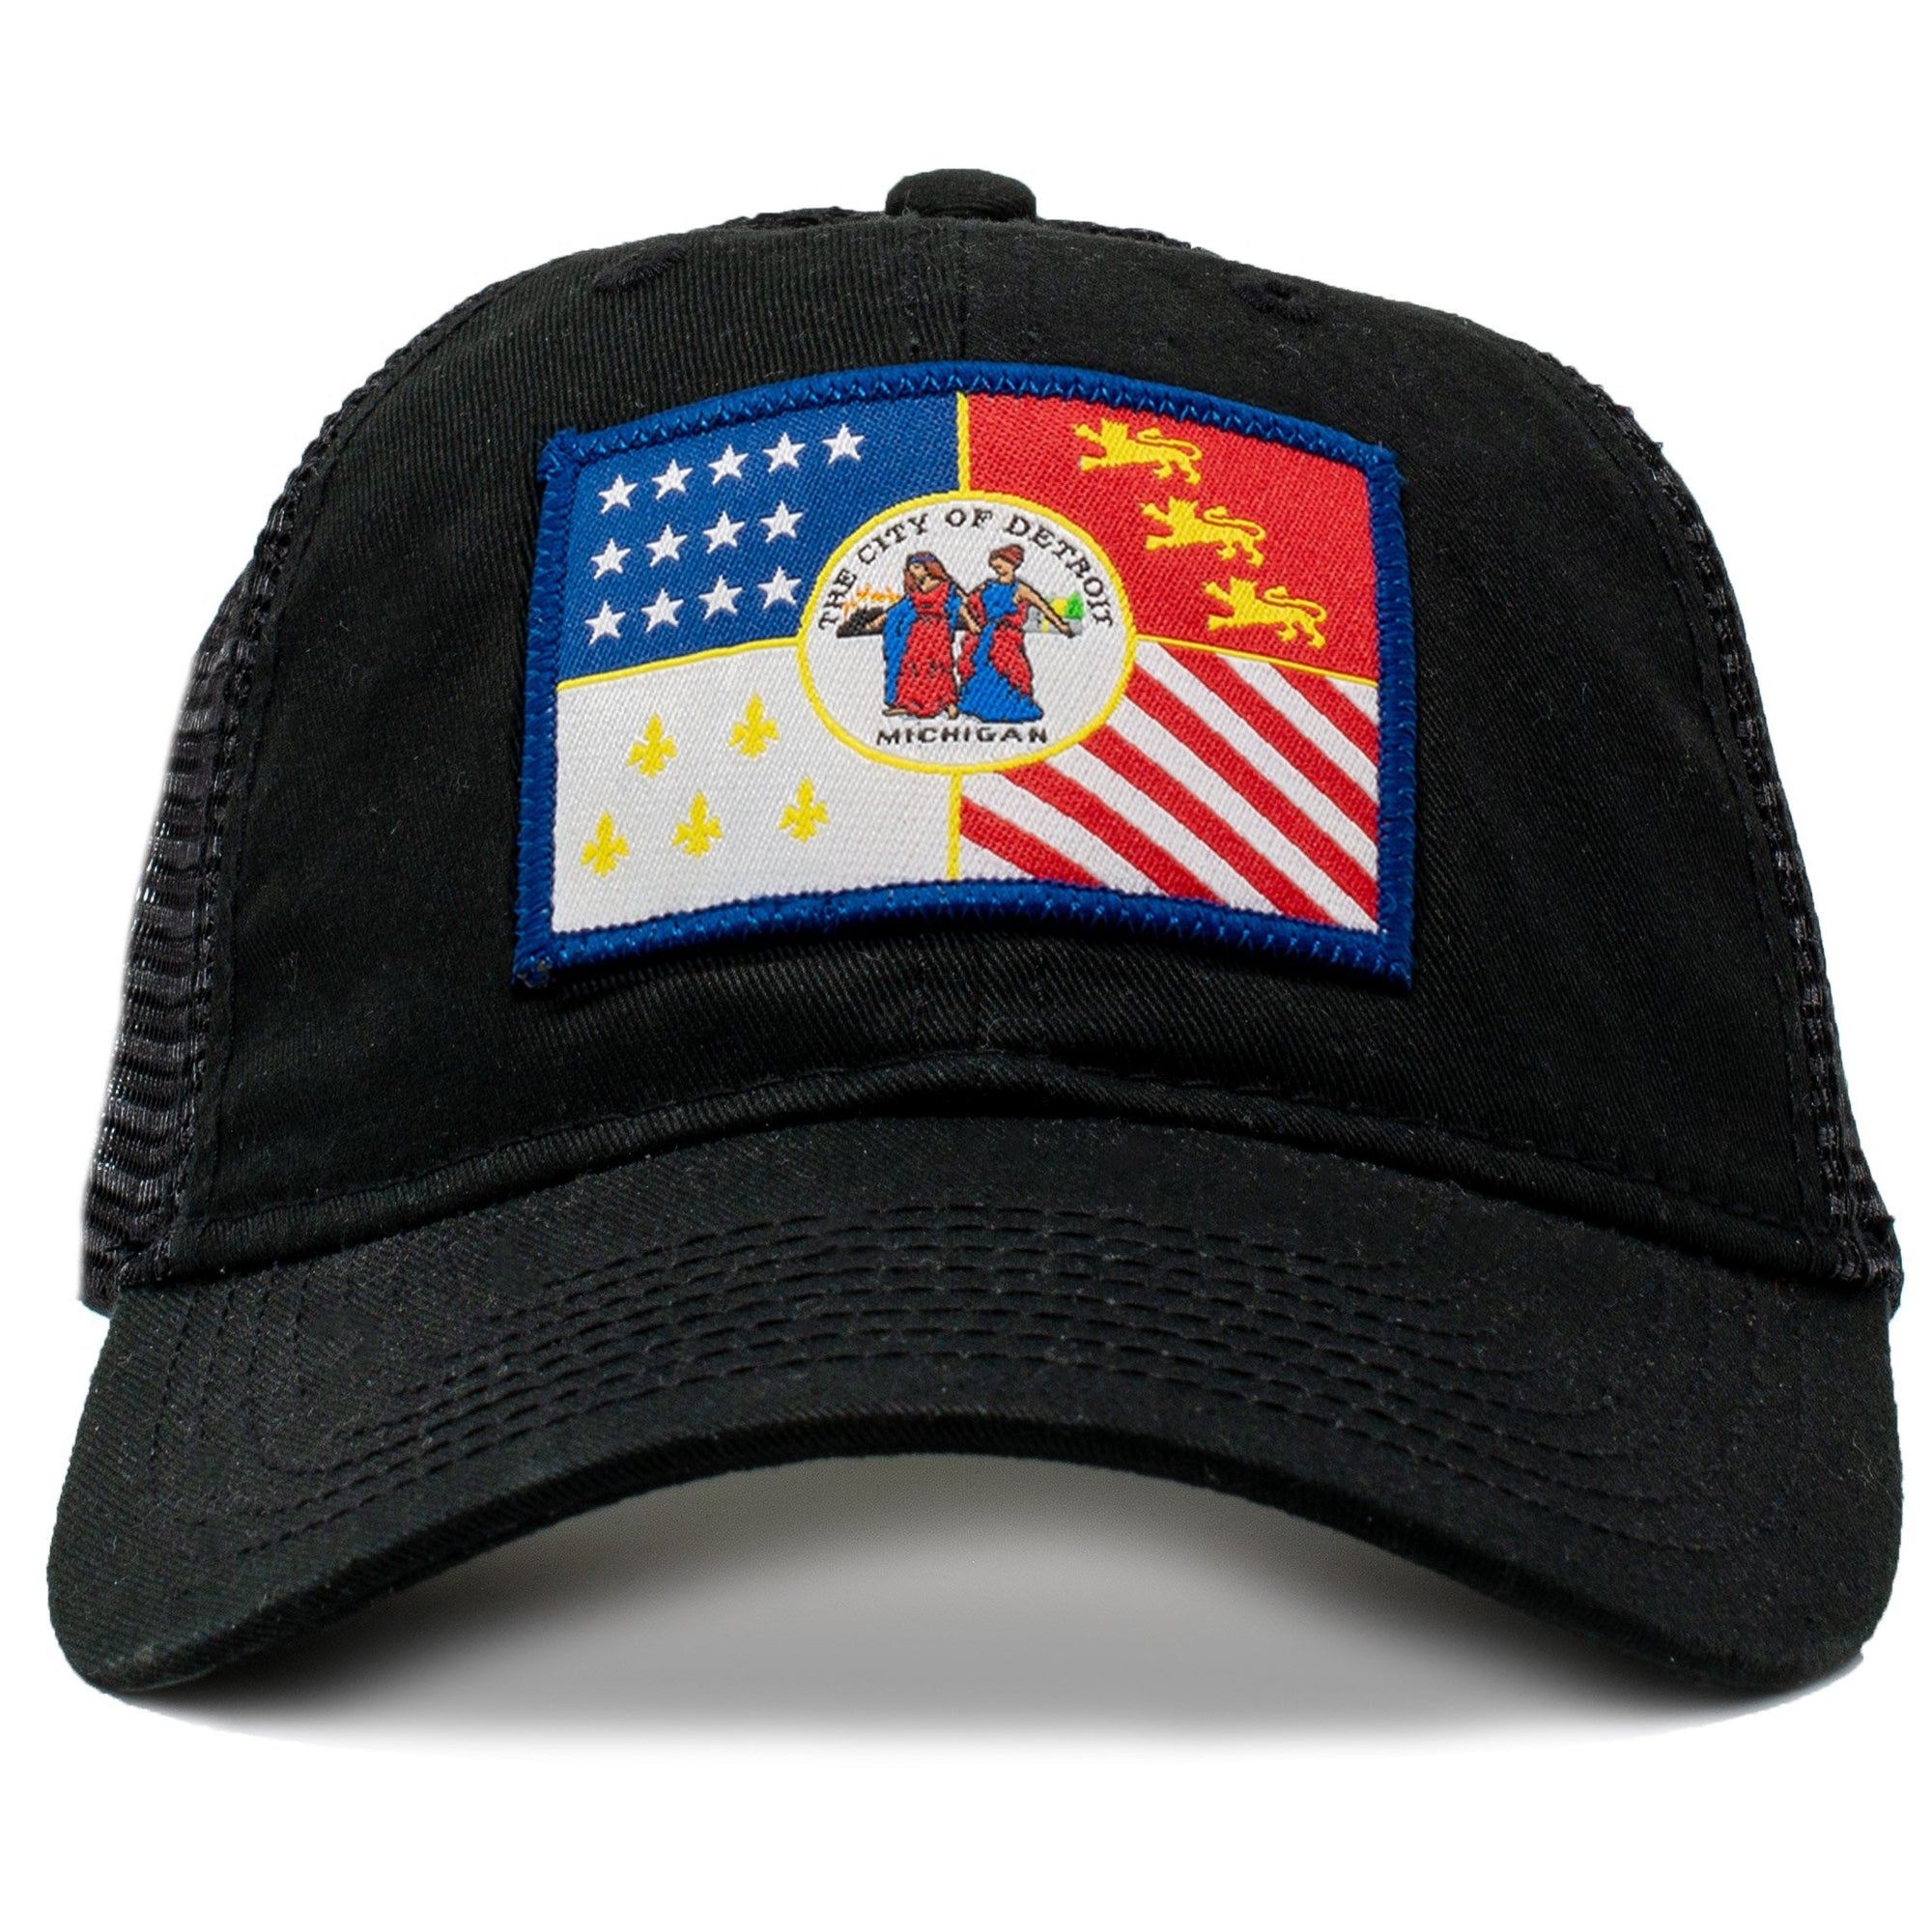 detroit baseball hat with city flag and classic looks